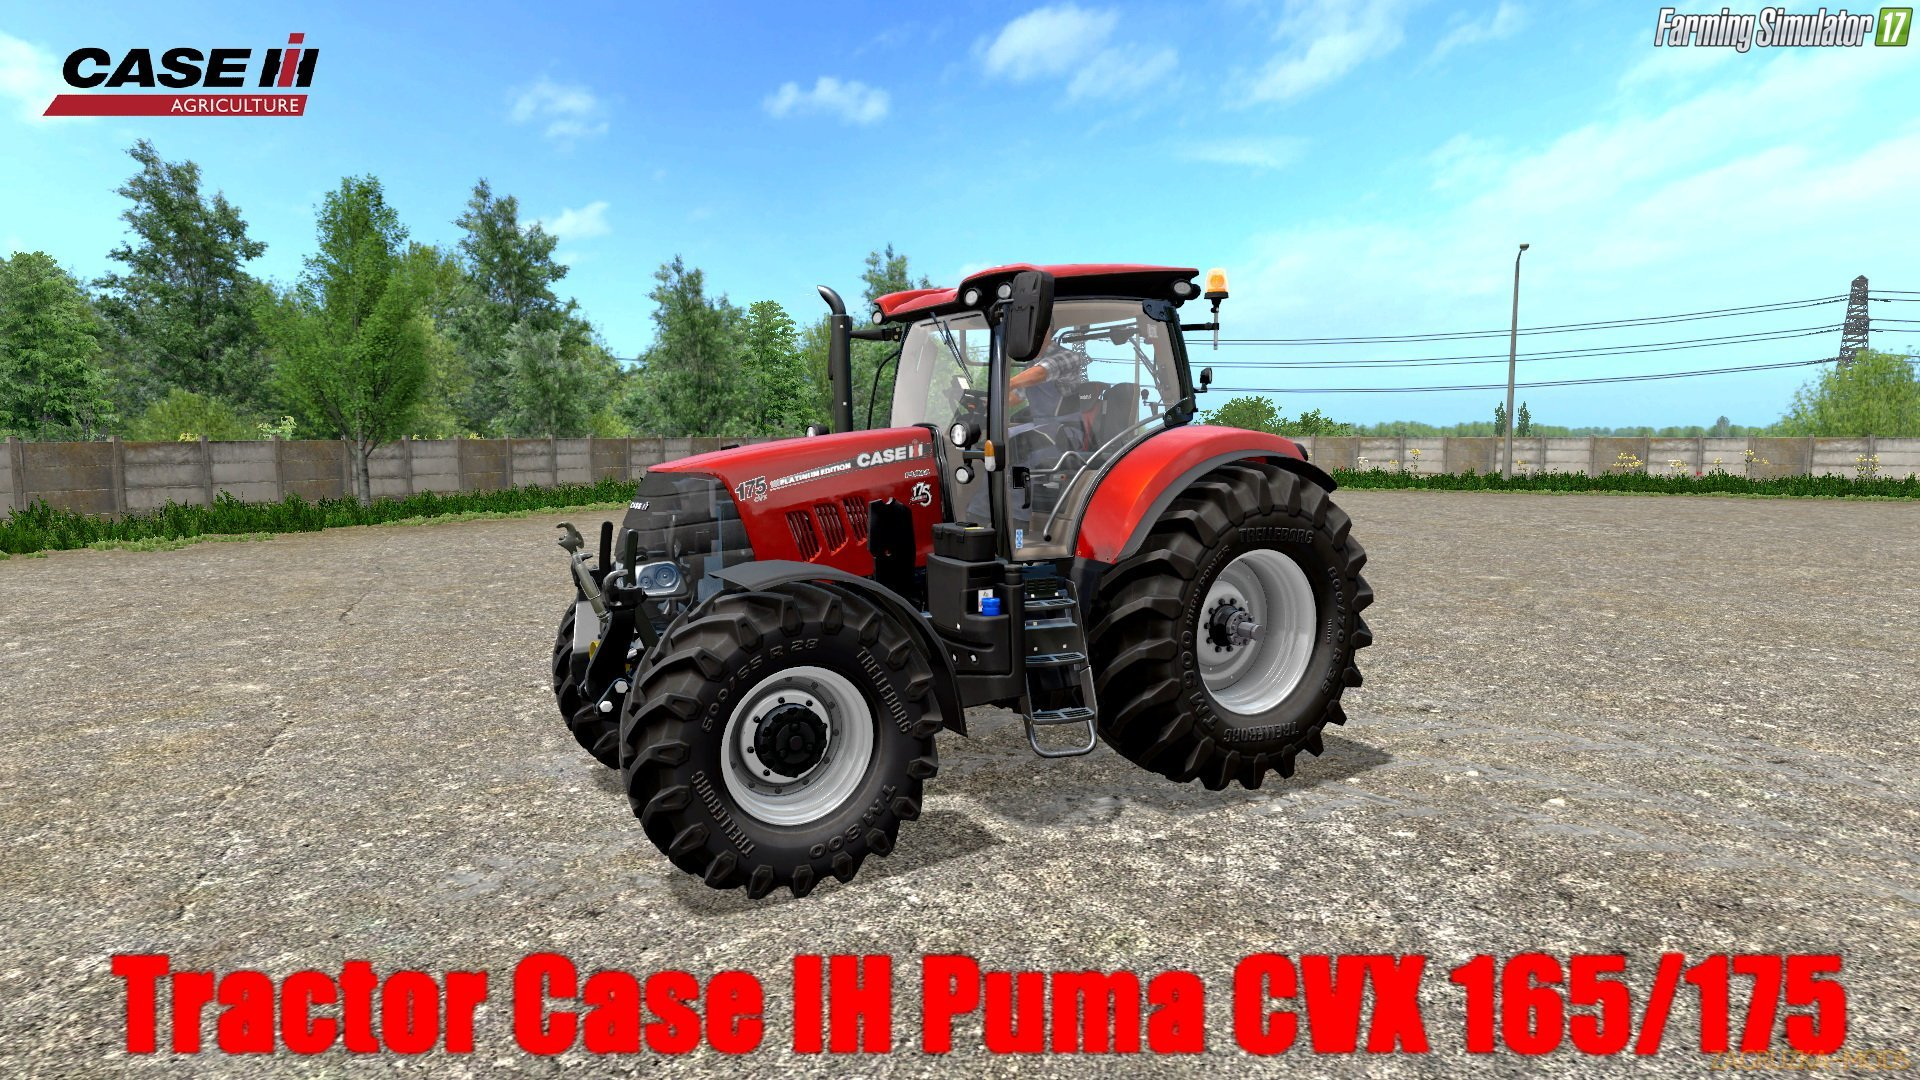 Case IH Puma CVX 165/175 v1.0 for FS 17